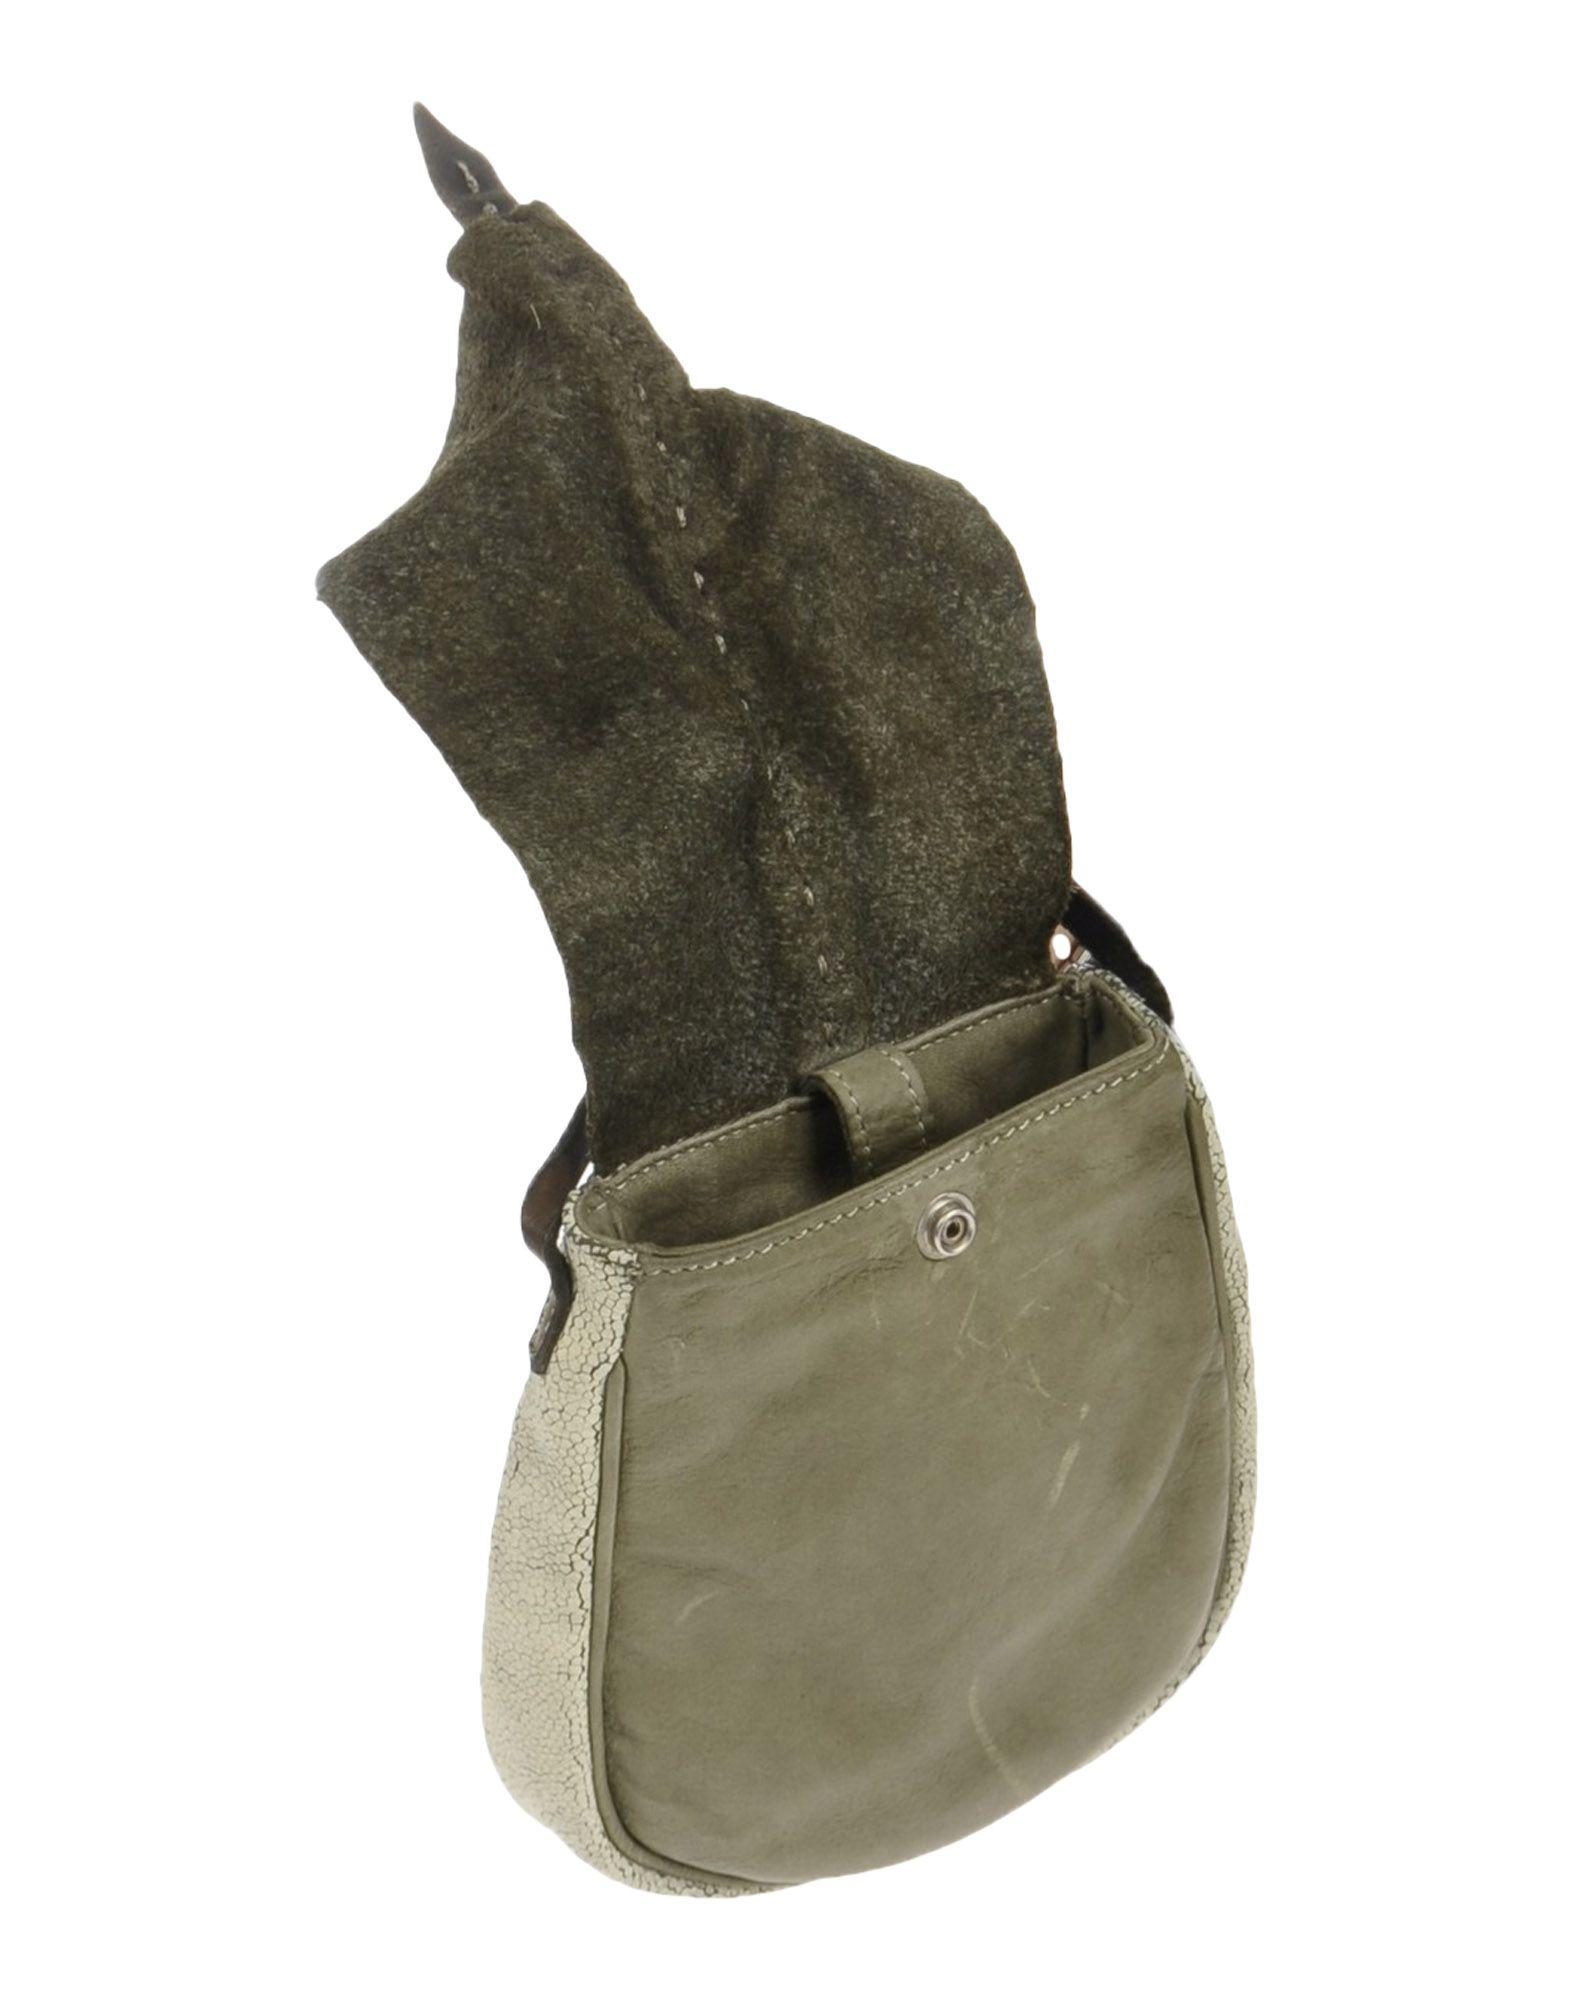 Caterina Lucchi Leather Cross-body Bag in Military Green (Green)